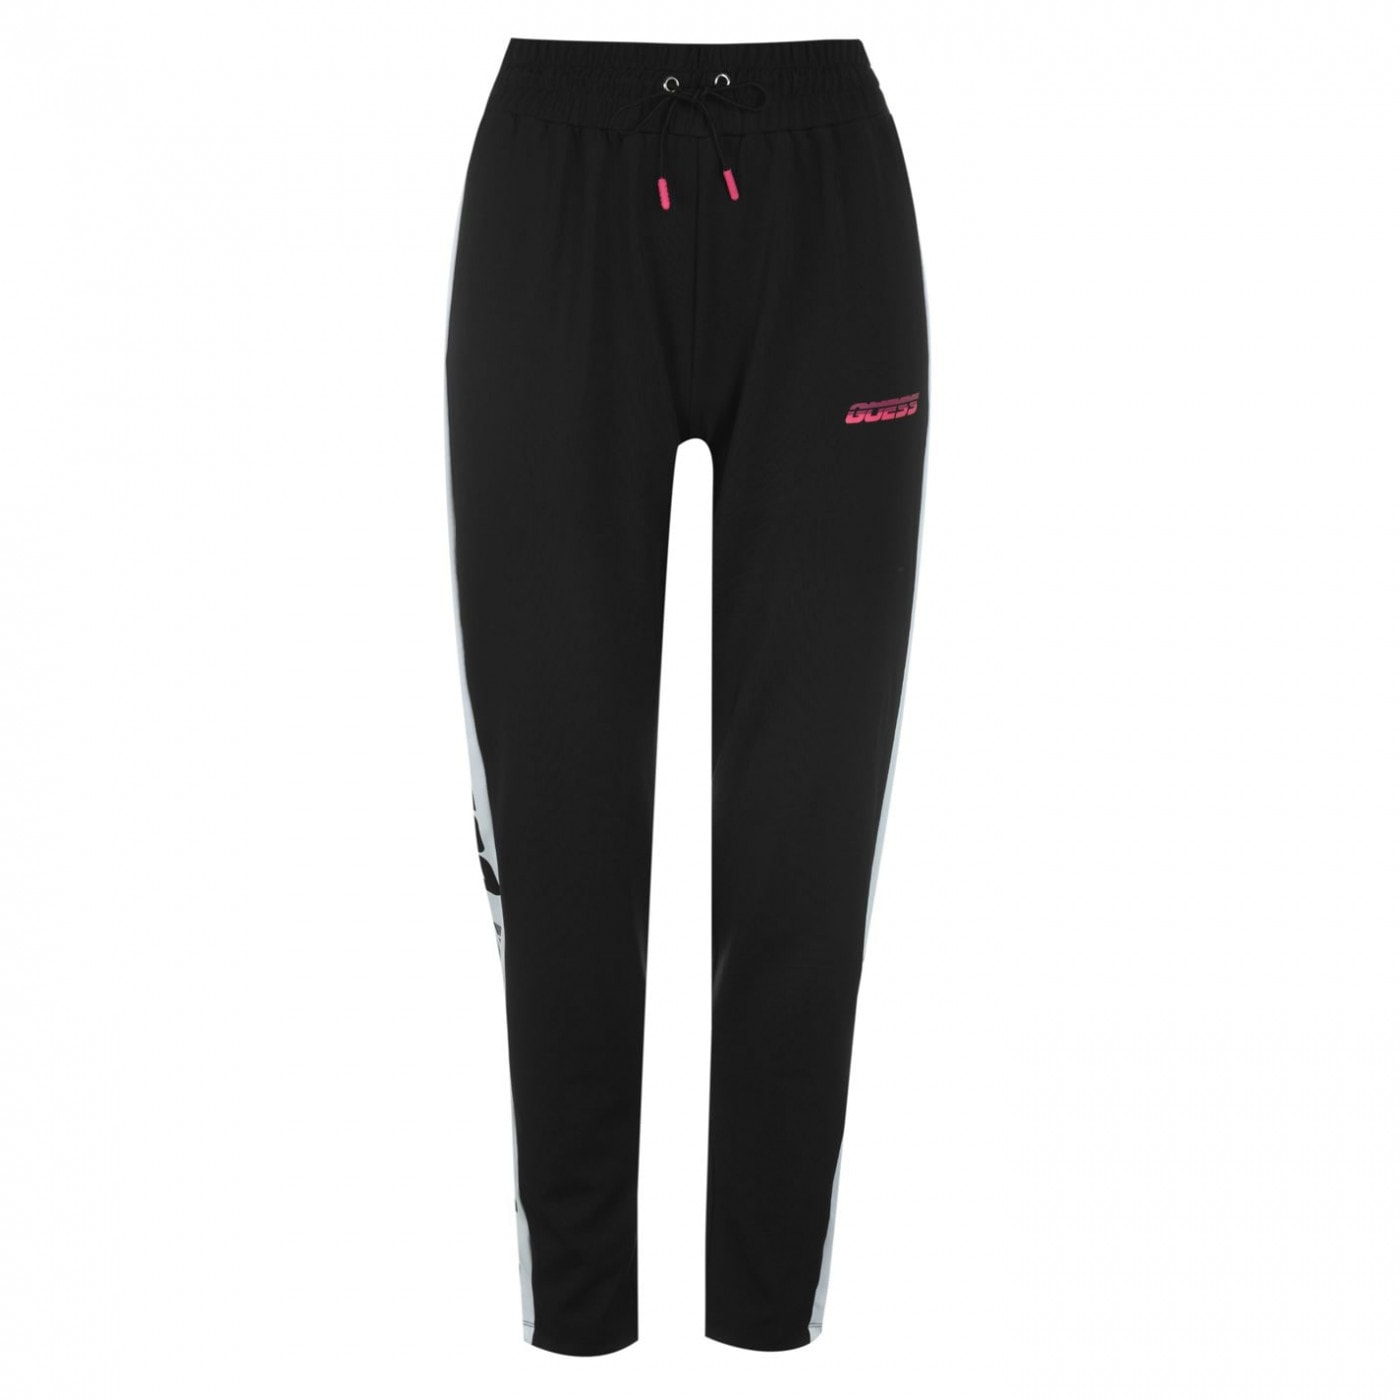 Guess Active Tracksuit Bottoms